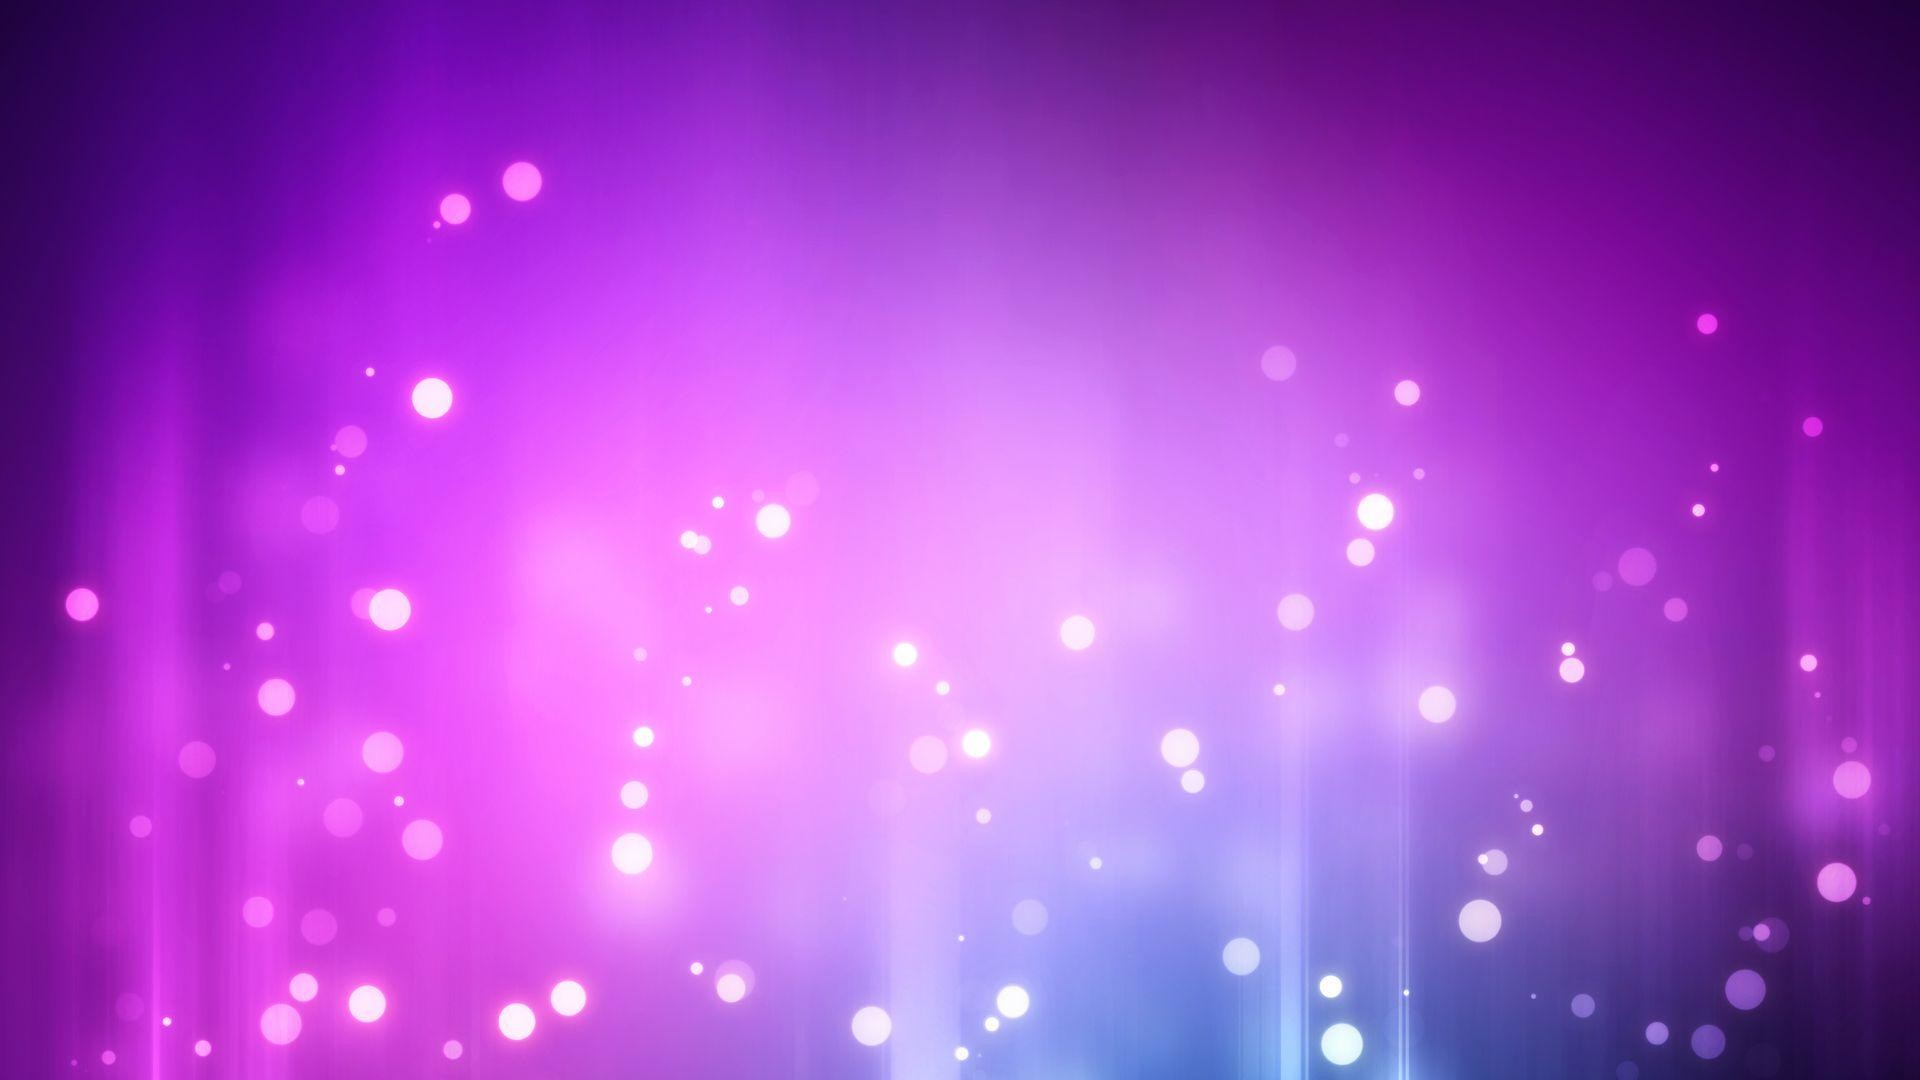 Wallpapers For > Pink And Blue Glitter Background